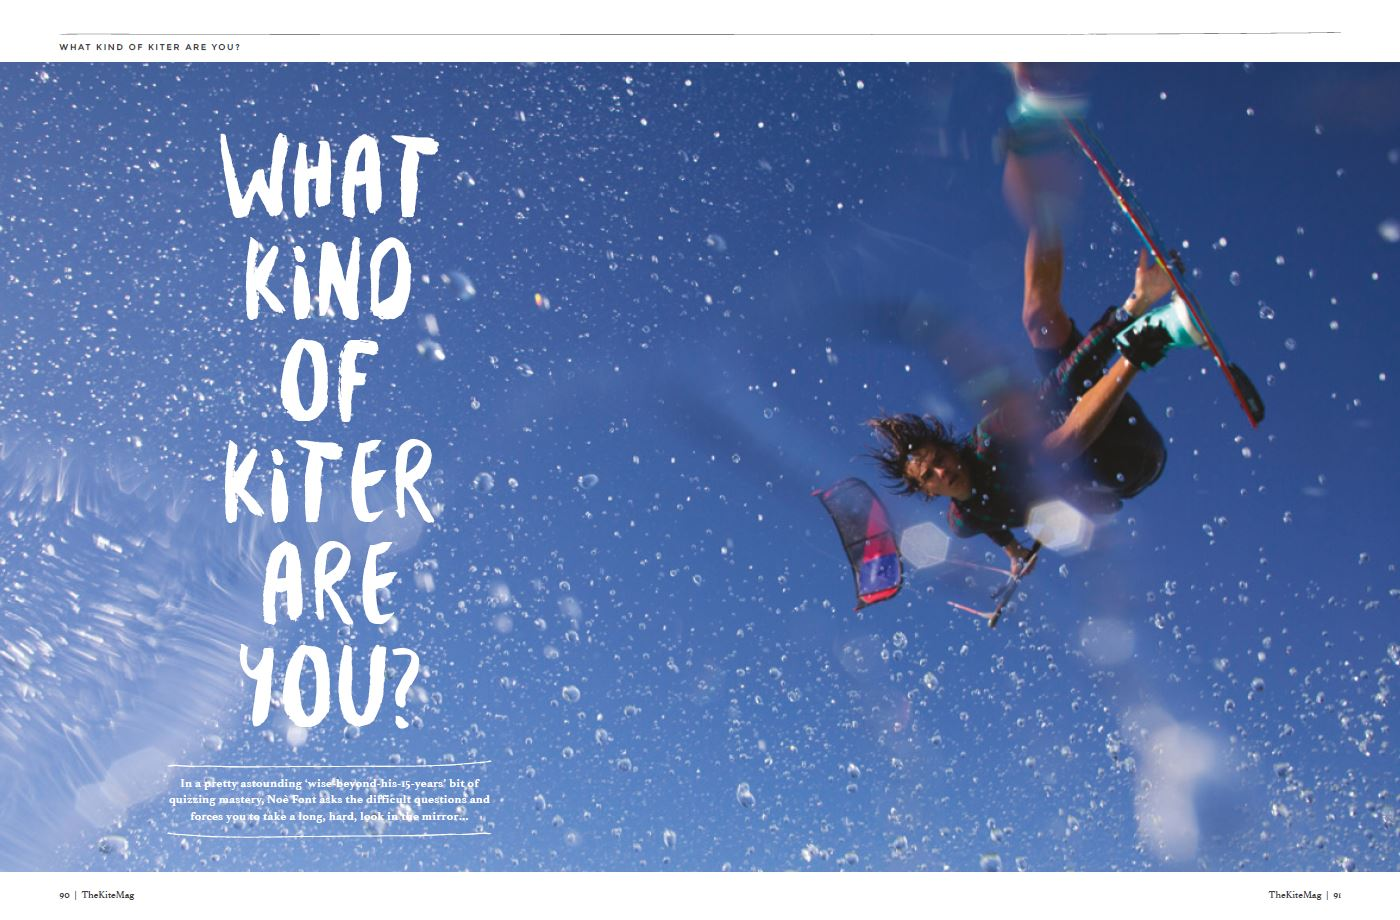 What kind of kiter. - TheKiteMag Issue #3